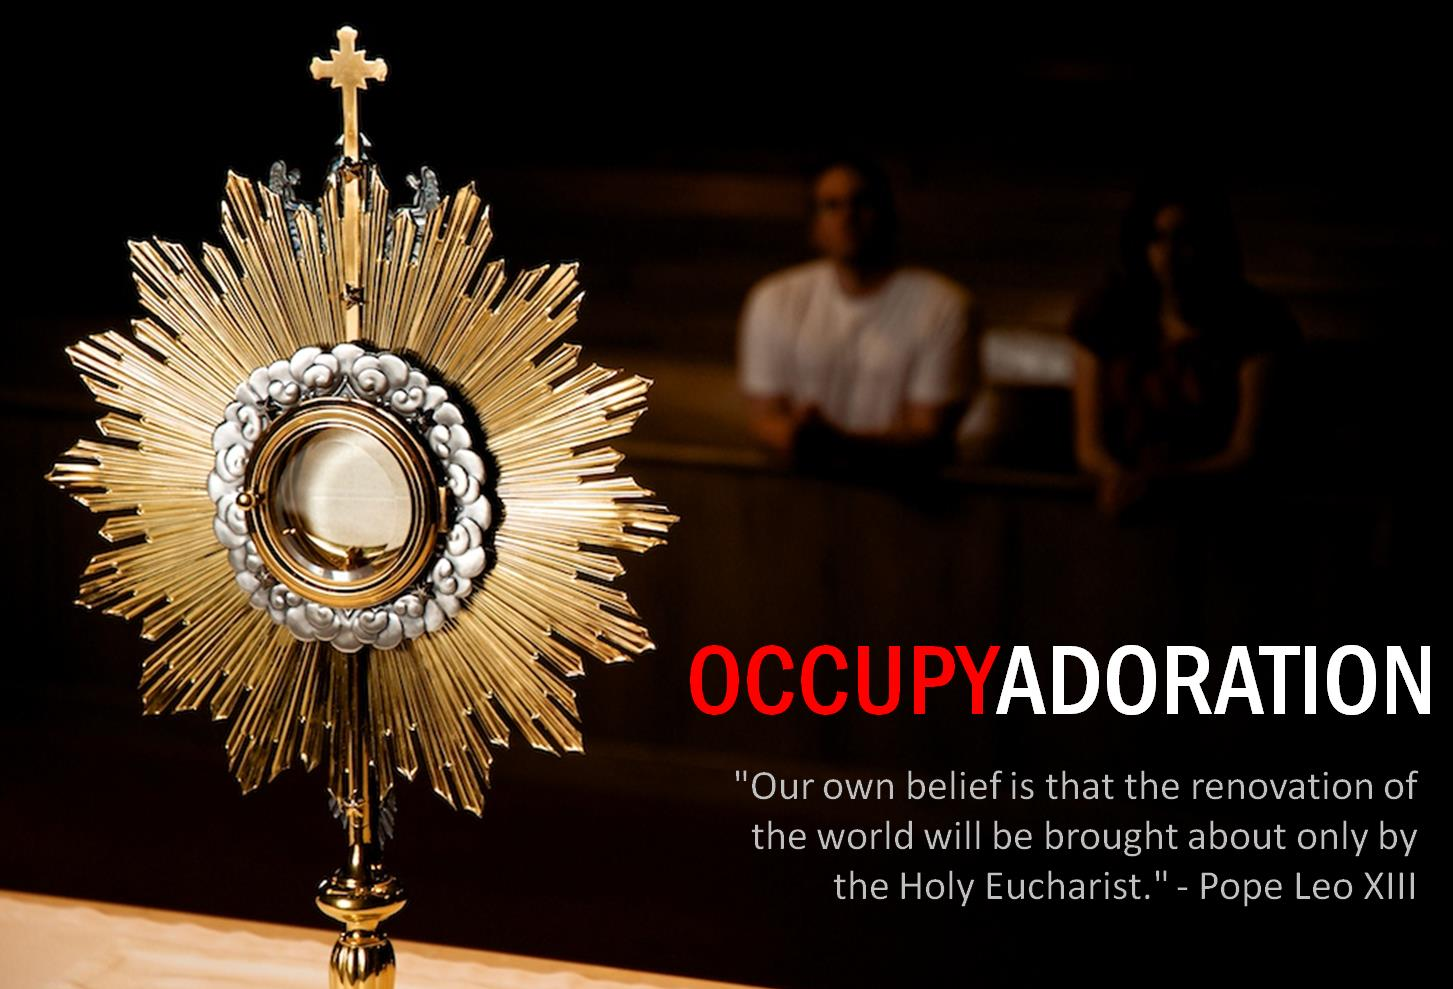 Occupy Adoration